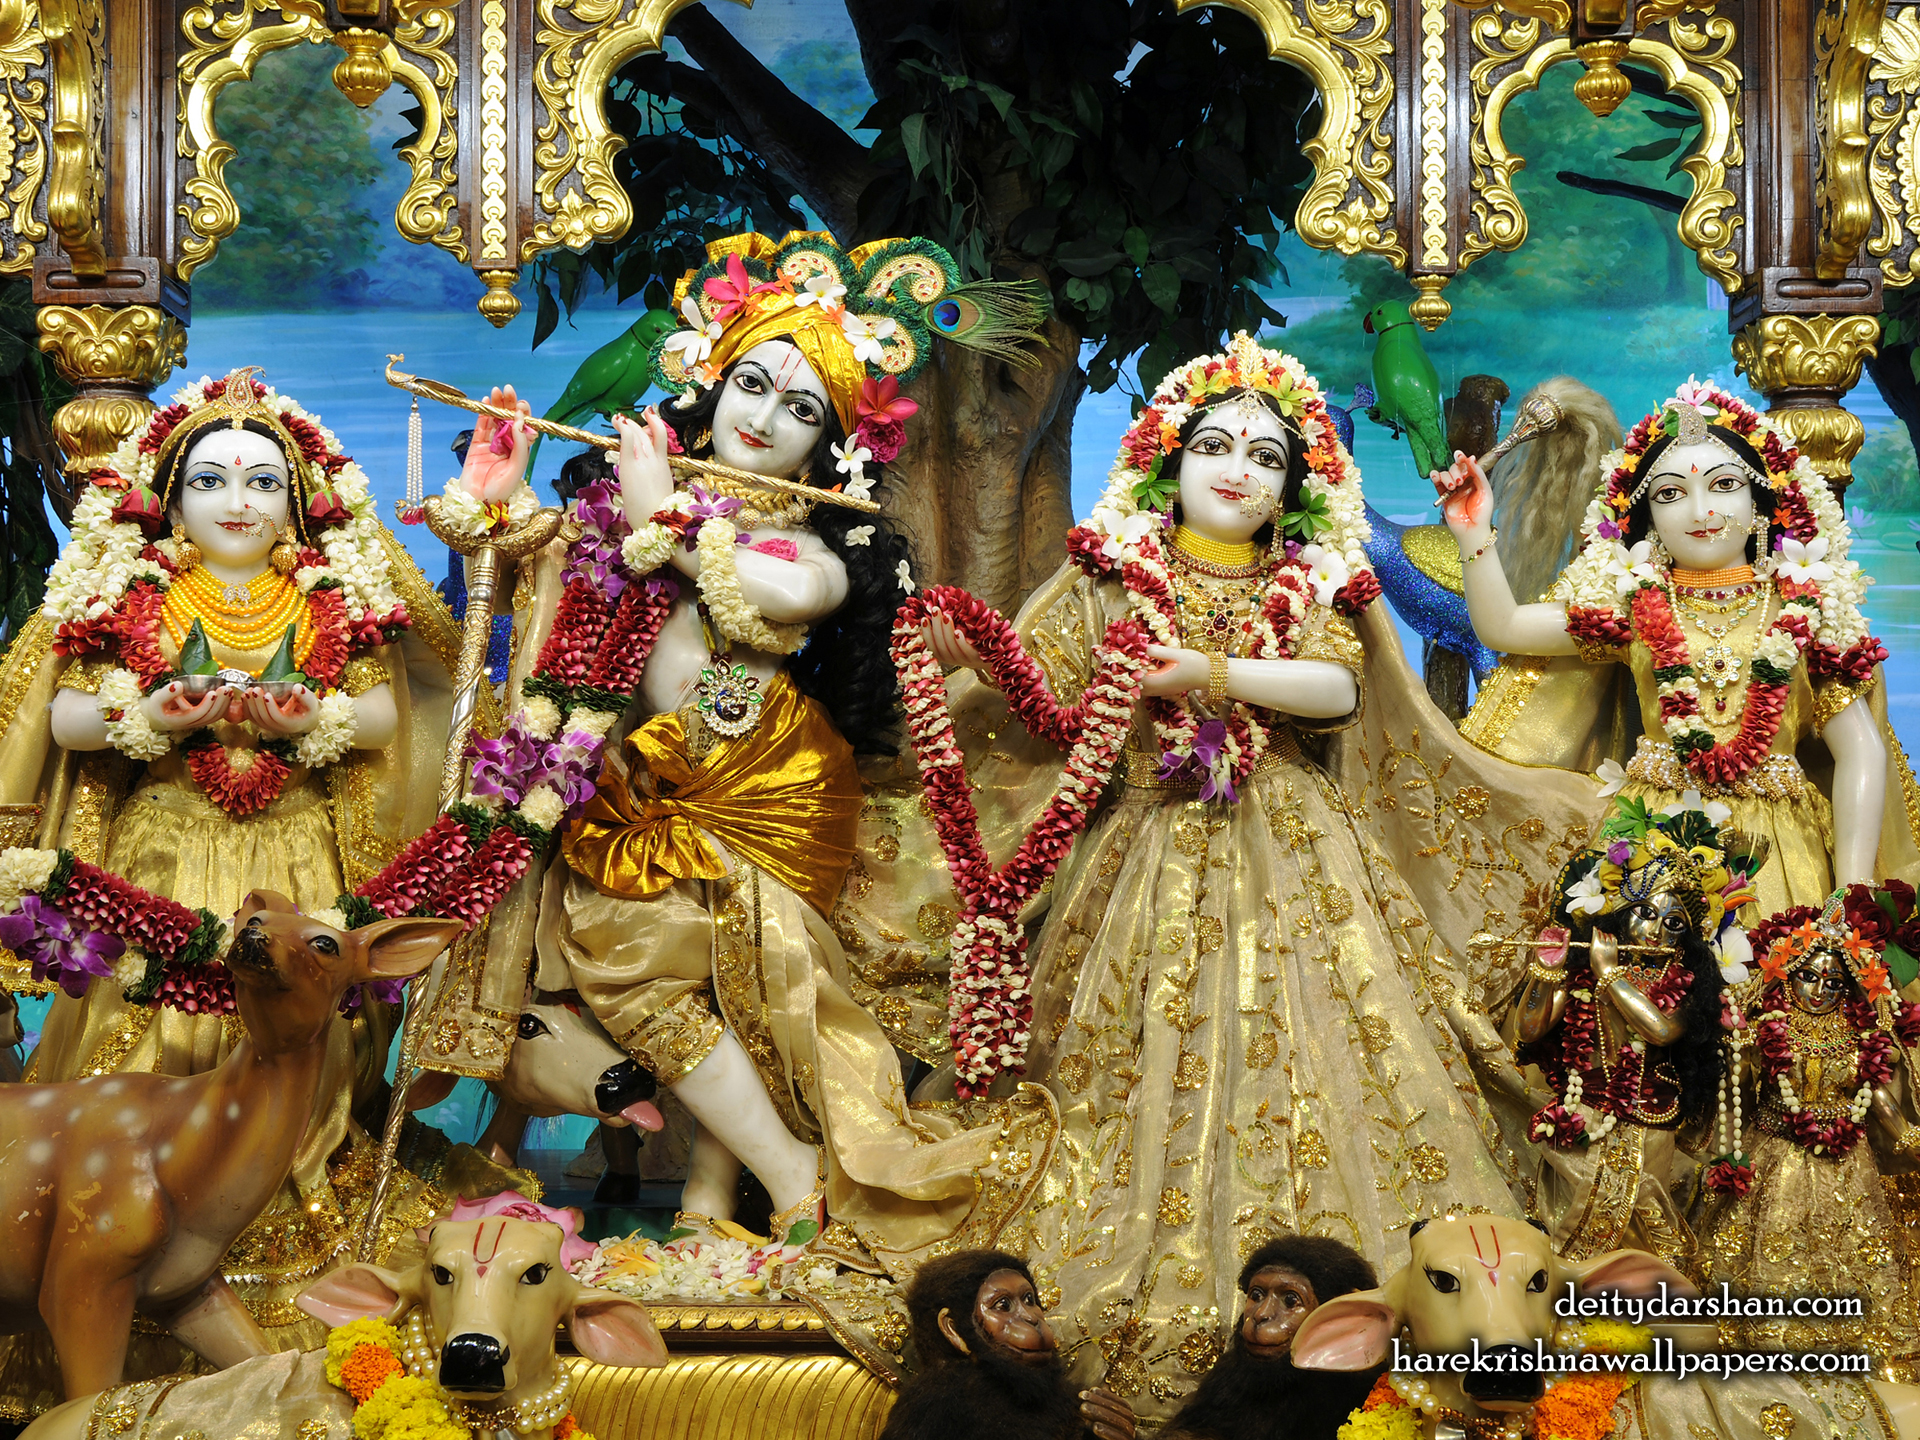 Sri Sri Radha Gopinath Lalita Vishakha Wallpaper (070) Size 1920x1440 Download